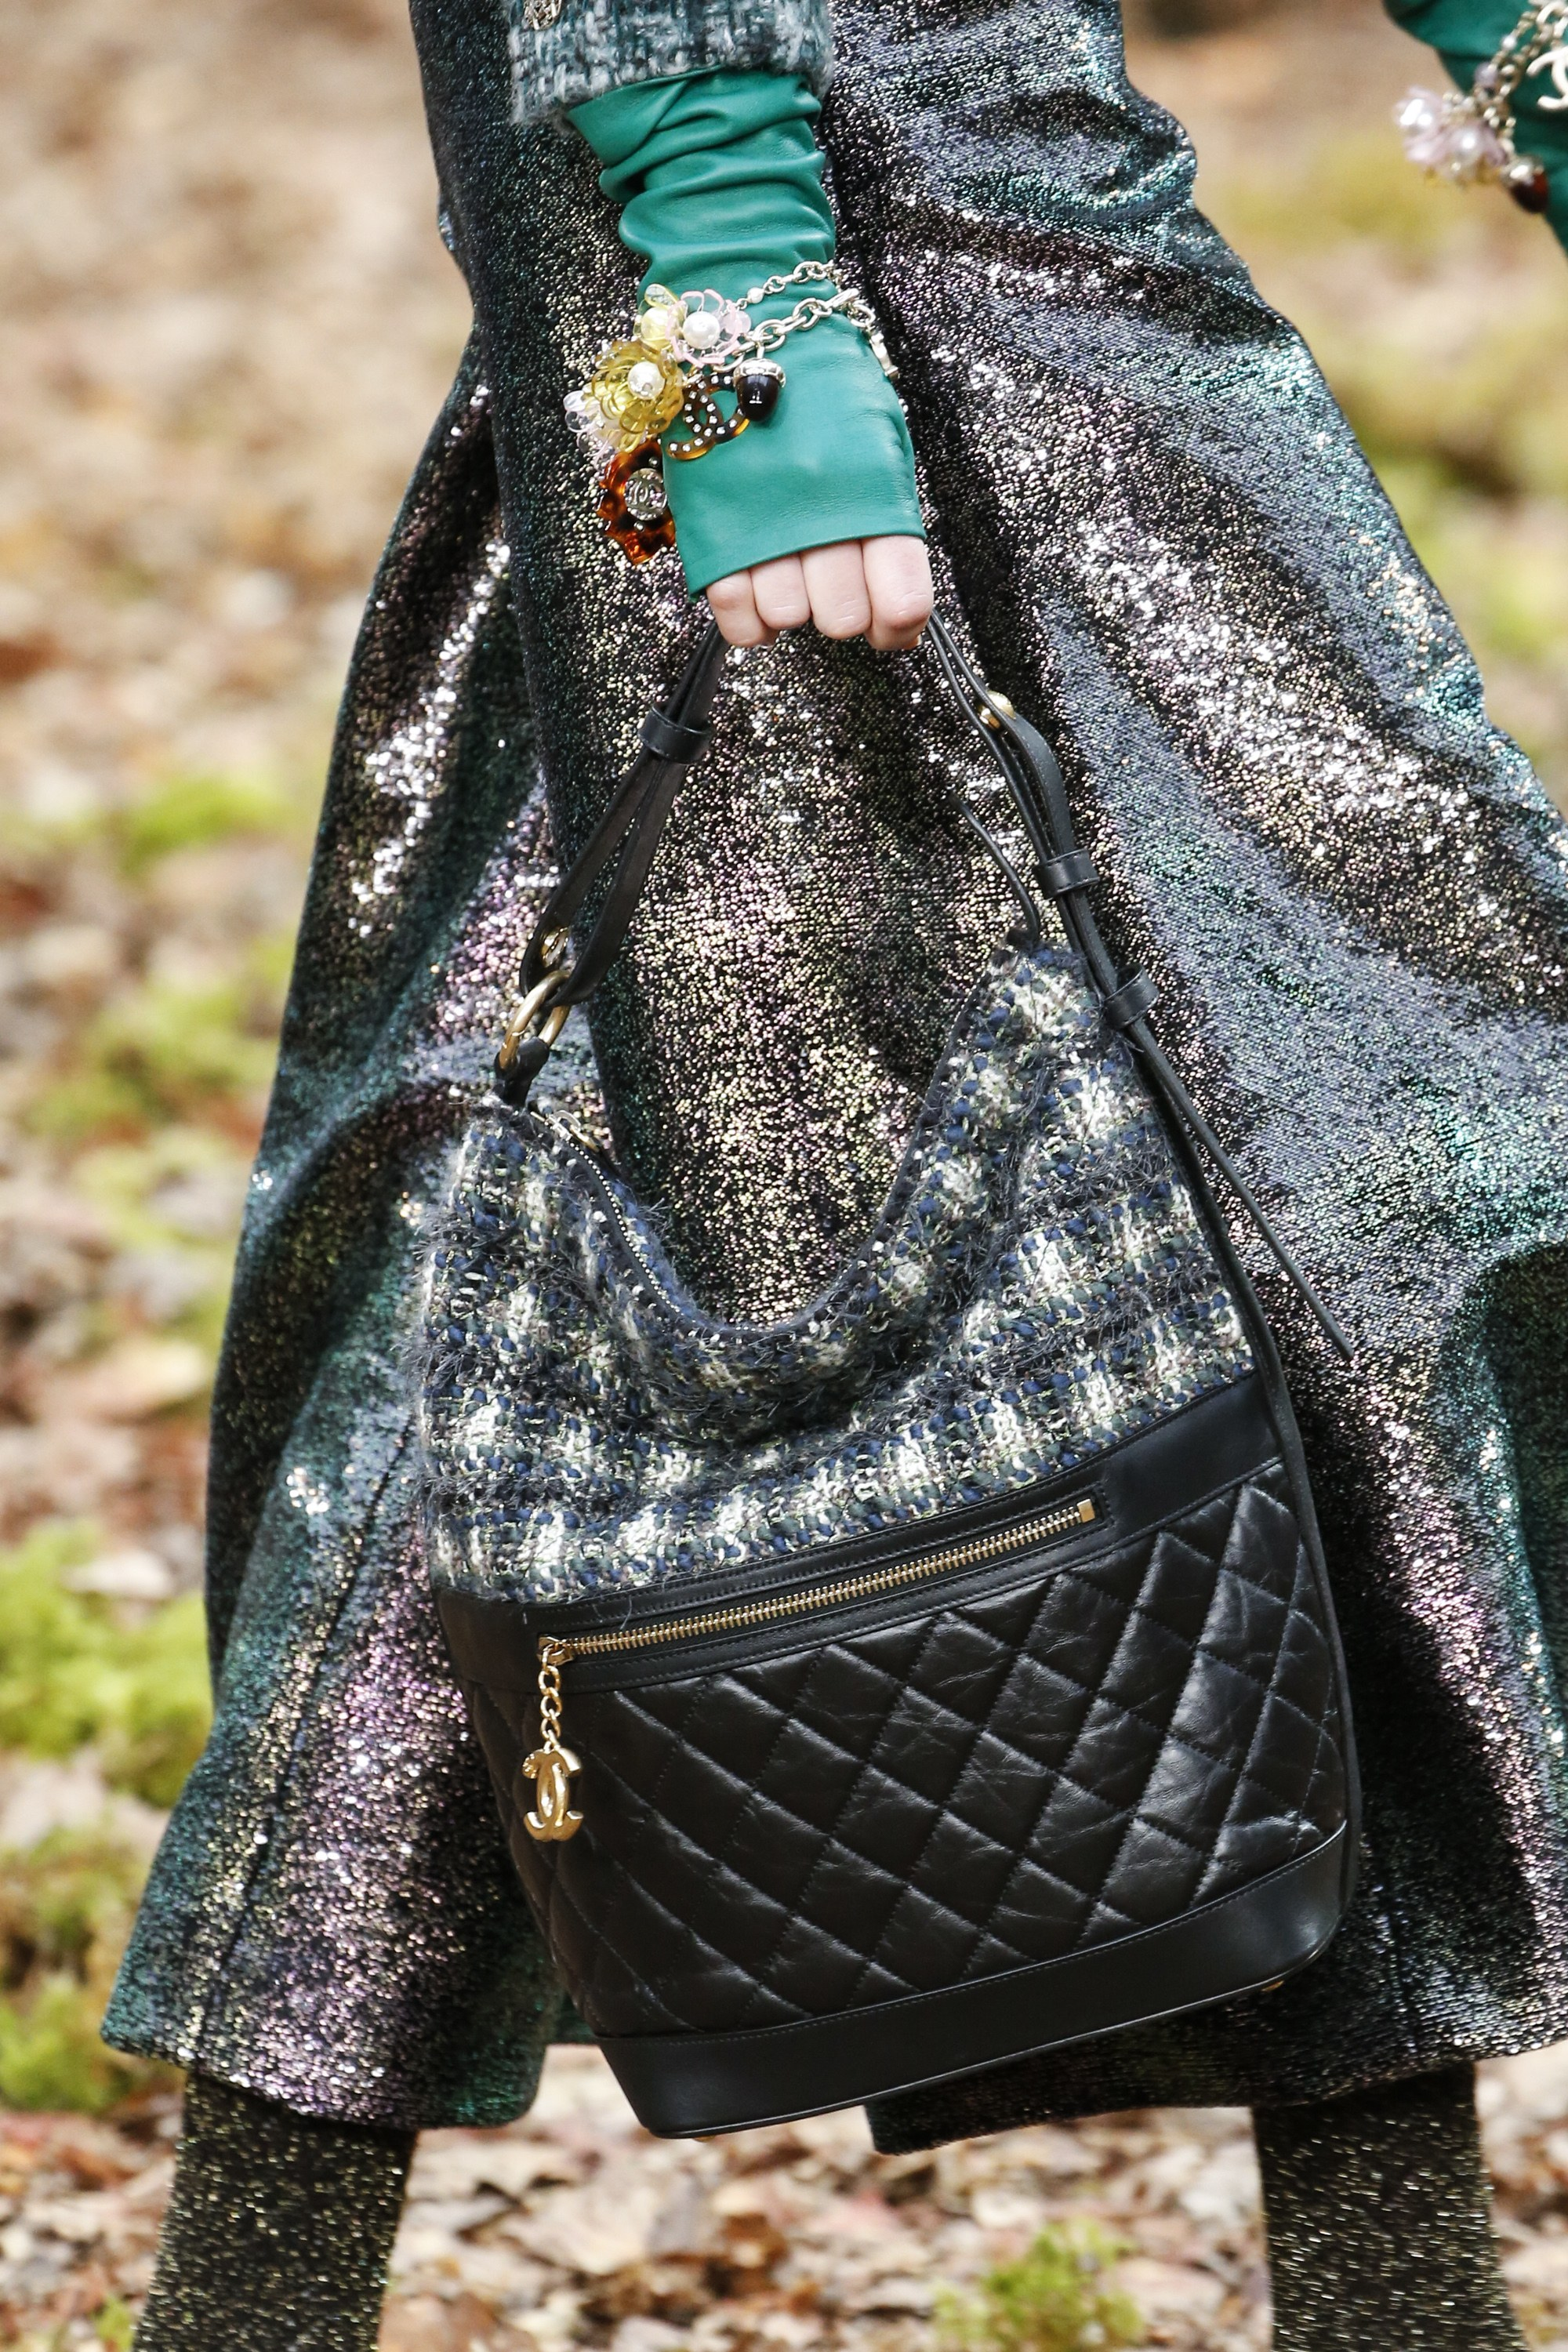 Chanel Fall/Winter 2018 Runway Bag Collection | Spotted ...